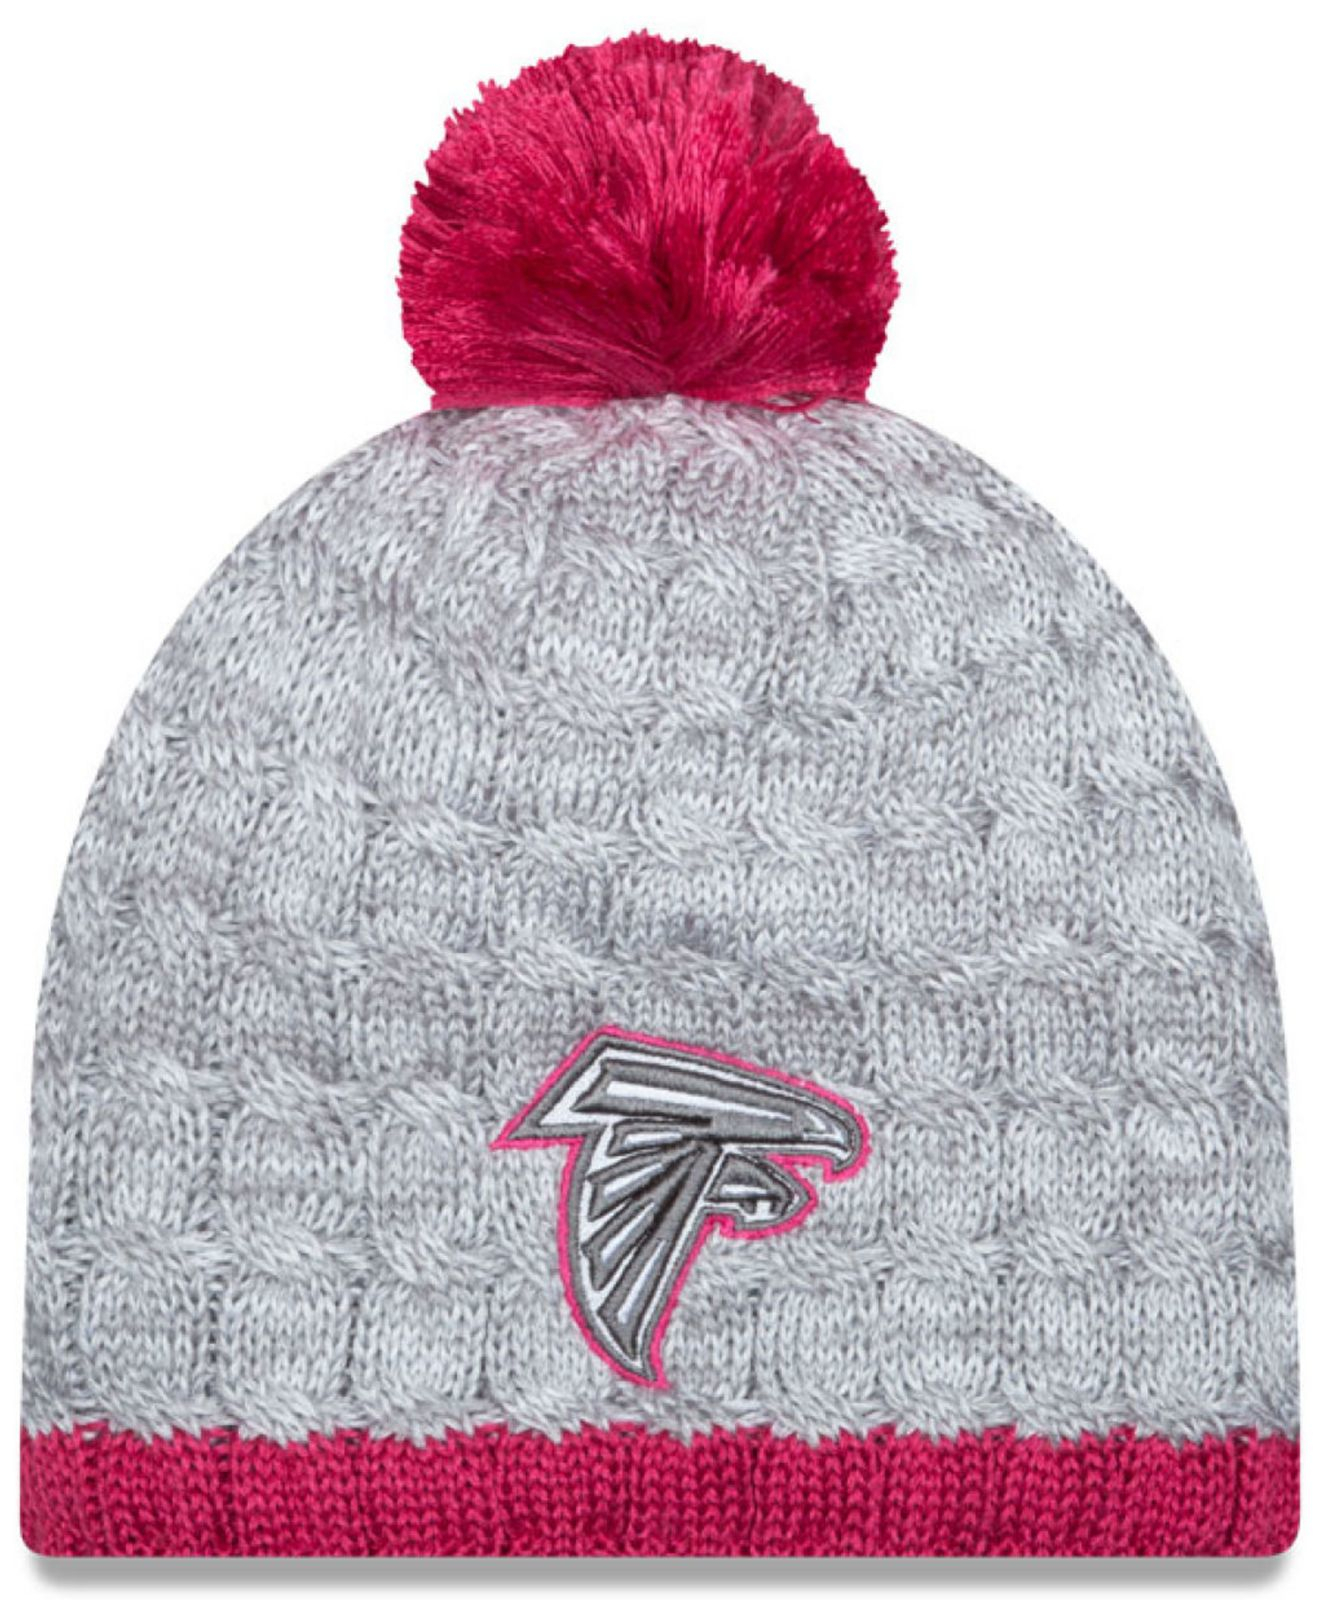 972f511fdf5a9 Lyst - KTZ Women s Atlanta Falcons Breast Cancer Awareness Knit Hat ...